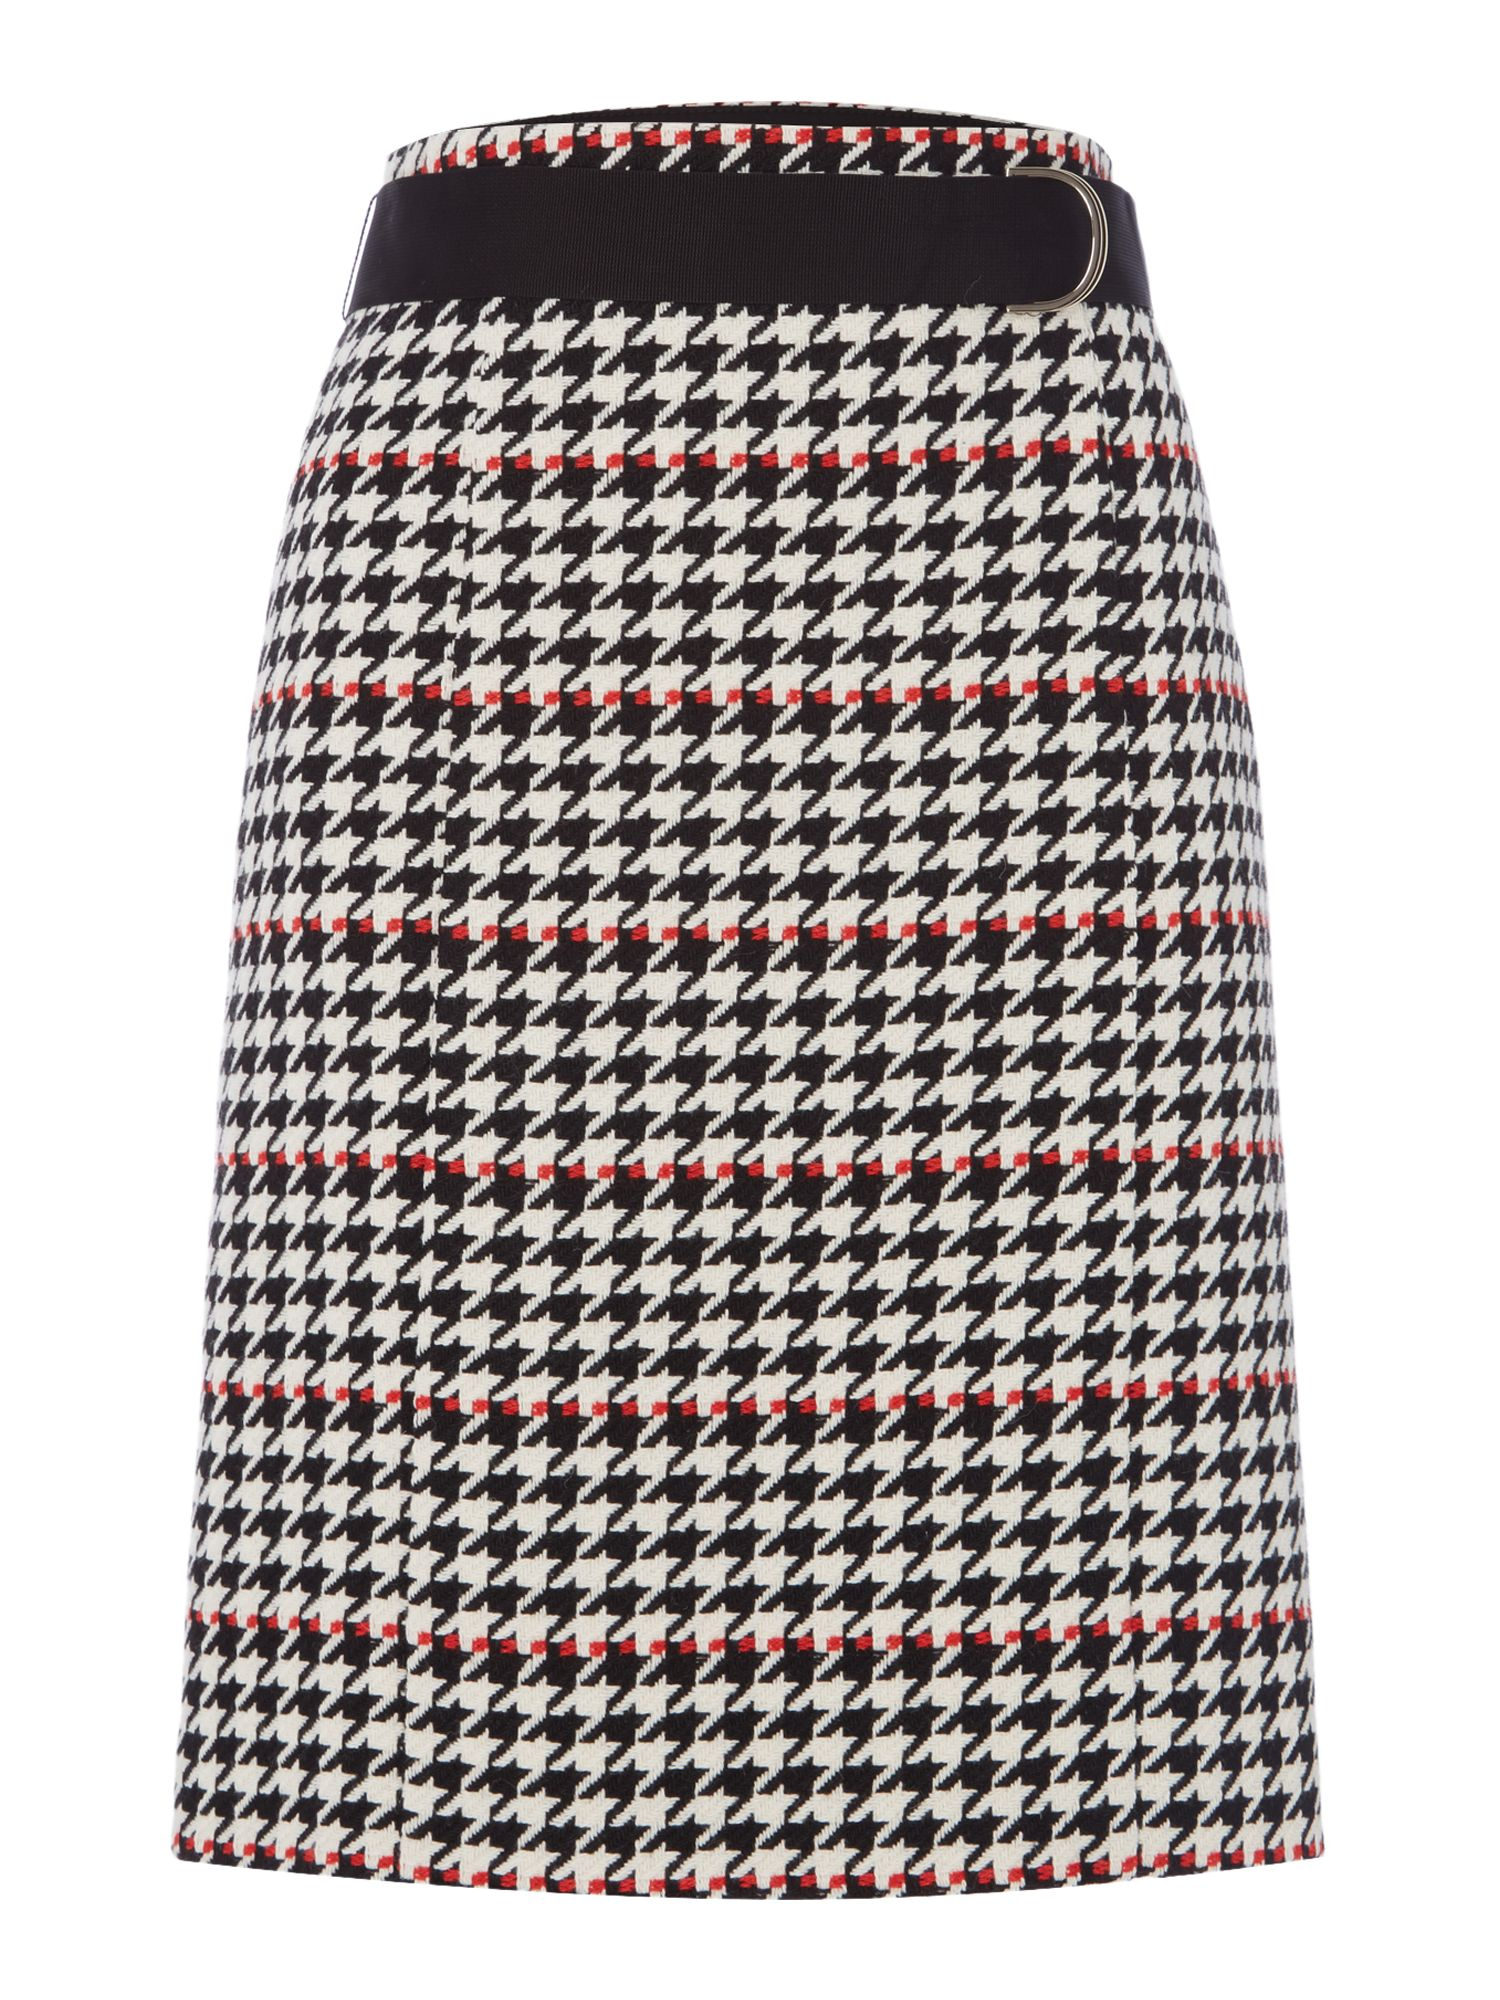 Hugo Boss Vunona Houndstooth Skirt, Multi-Coloured